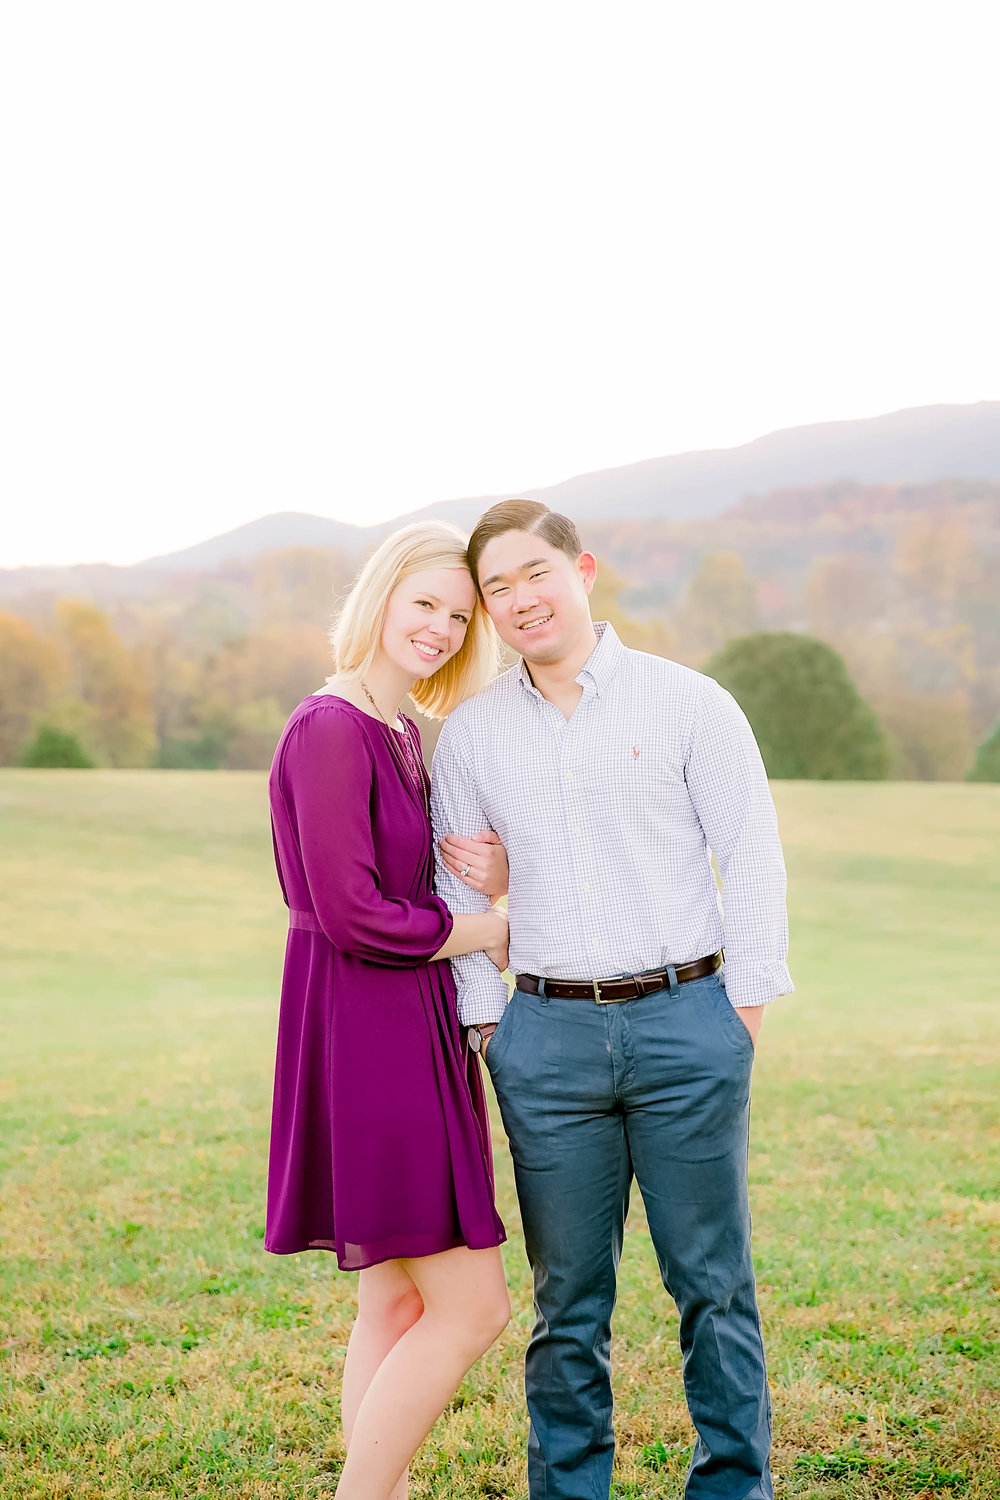 Johnson City, TN sunrise engagement session, East Tennessee wedding photography, Tri Cities engagement photography, bright and airy golden hour photography